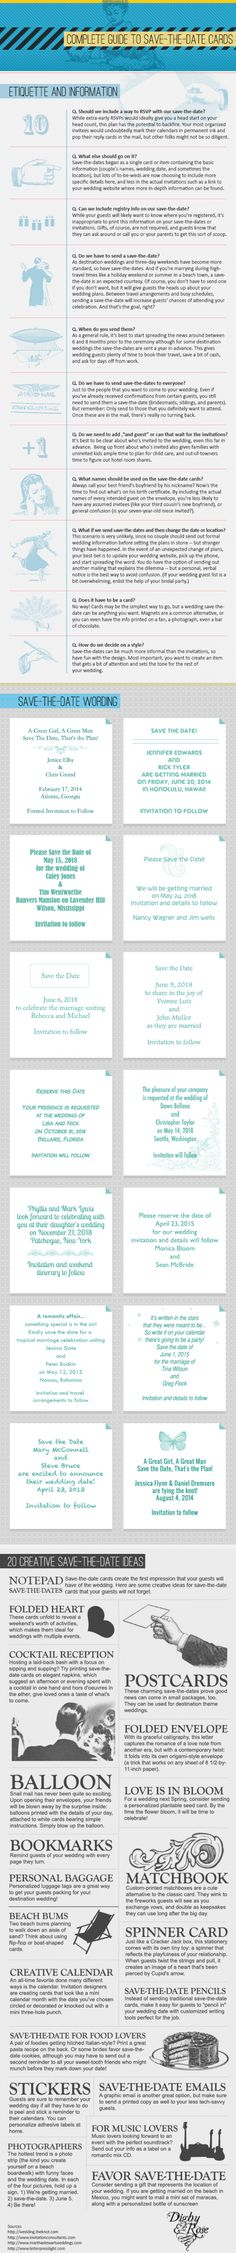 idea, complet guid, dates, wedding planning, wedding invitations, roses, savethed card, cards, bride groom